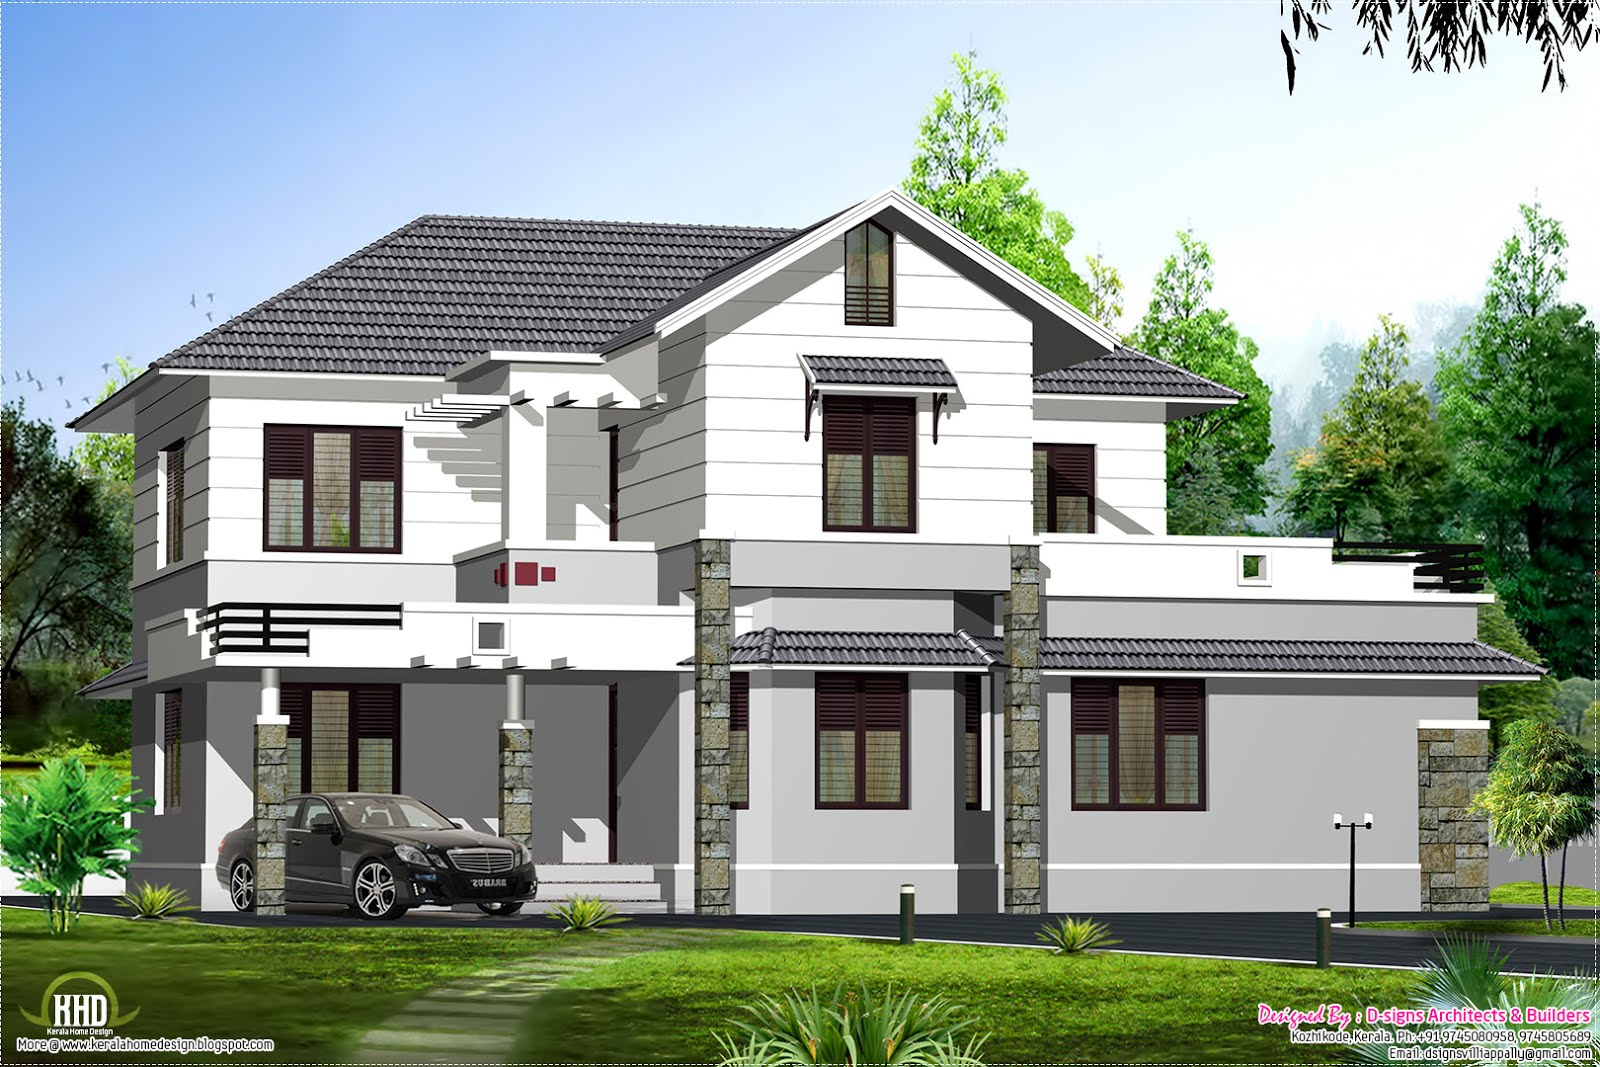 House Style Roof : Kerala style sloping roof villa design home